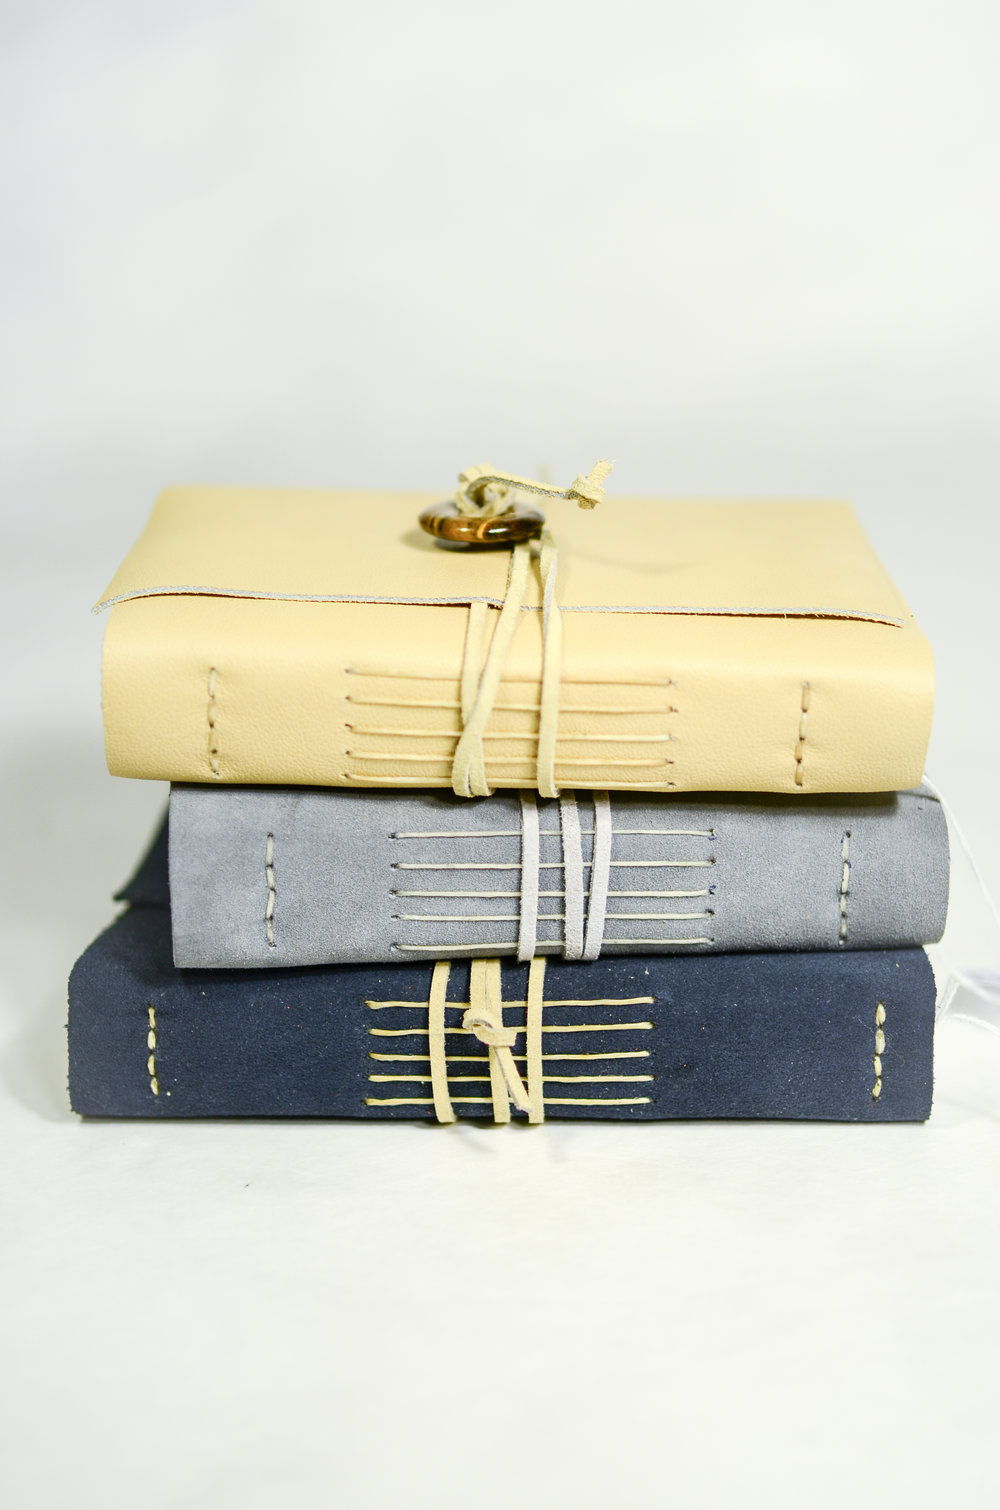 9. Michelle Metcalfe Hand-bound Leather Journals, $60.00 each